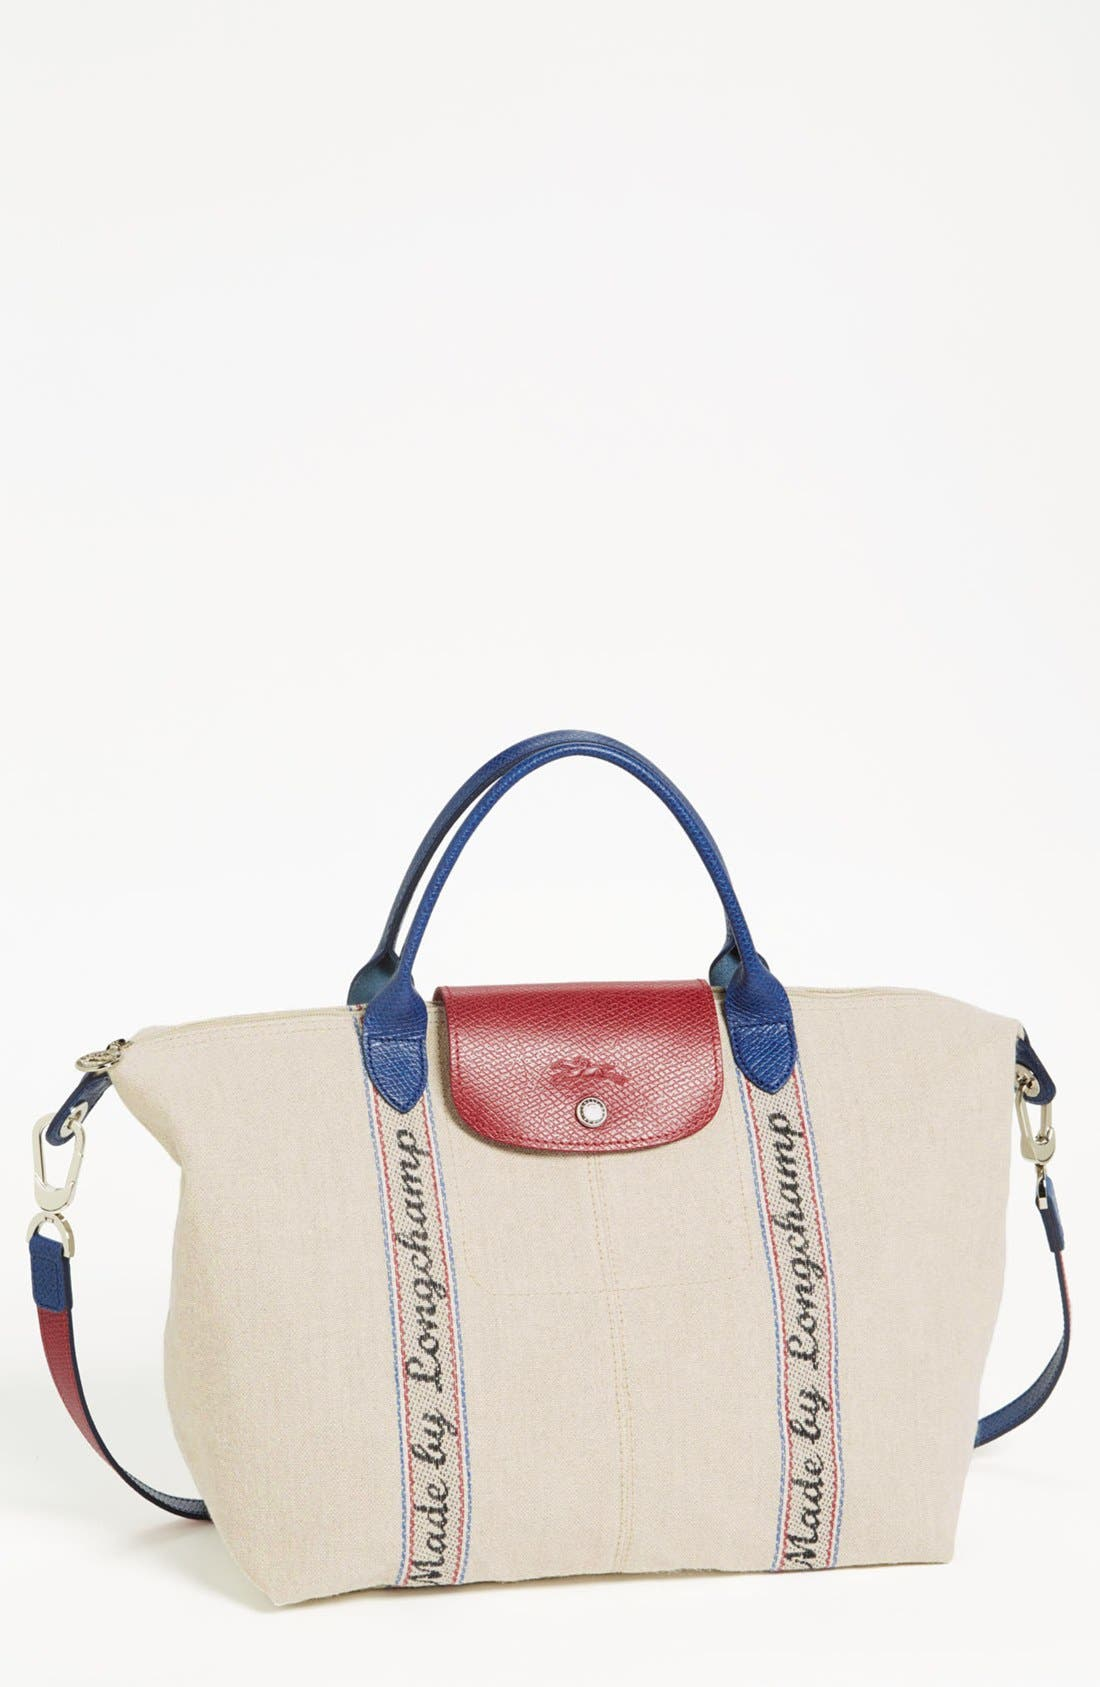 Alternate Image 1 Selected - Longchamp 'Made by Longchamp' Tote